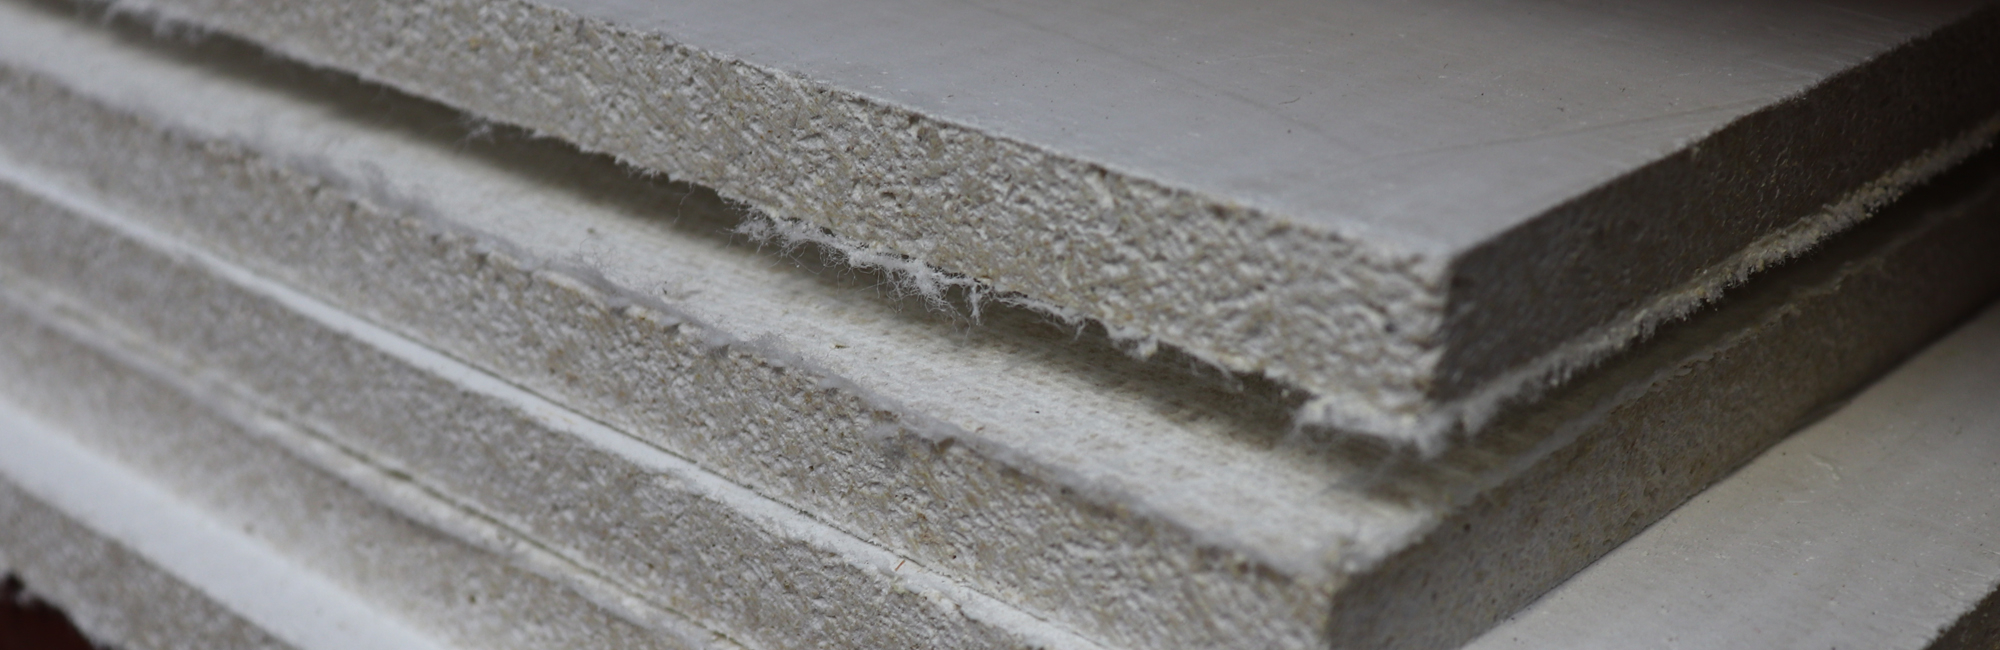 cement board, cement board chester, what is cement board, cement board deals